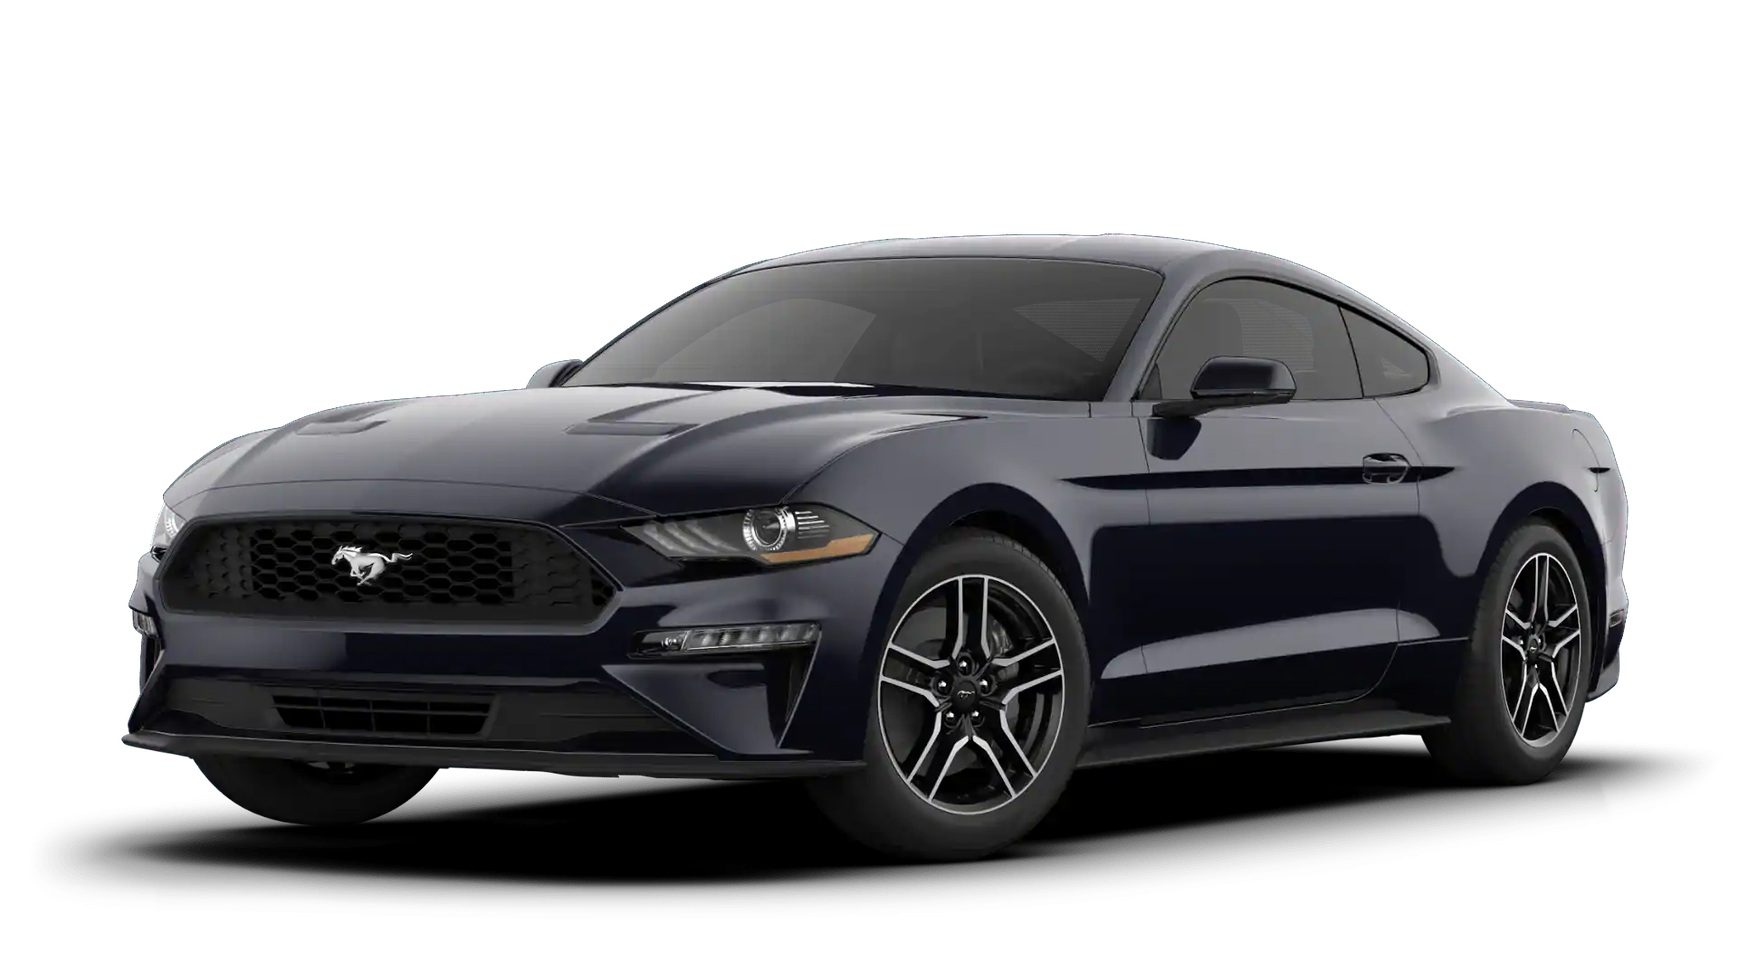 Ford Mustang 2020 EcoBoost® Premium Fastback